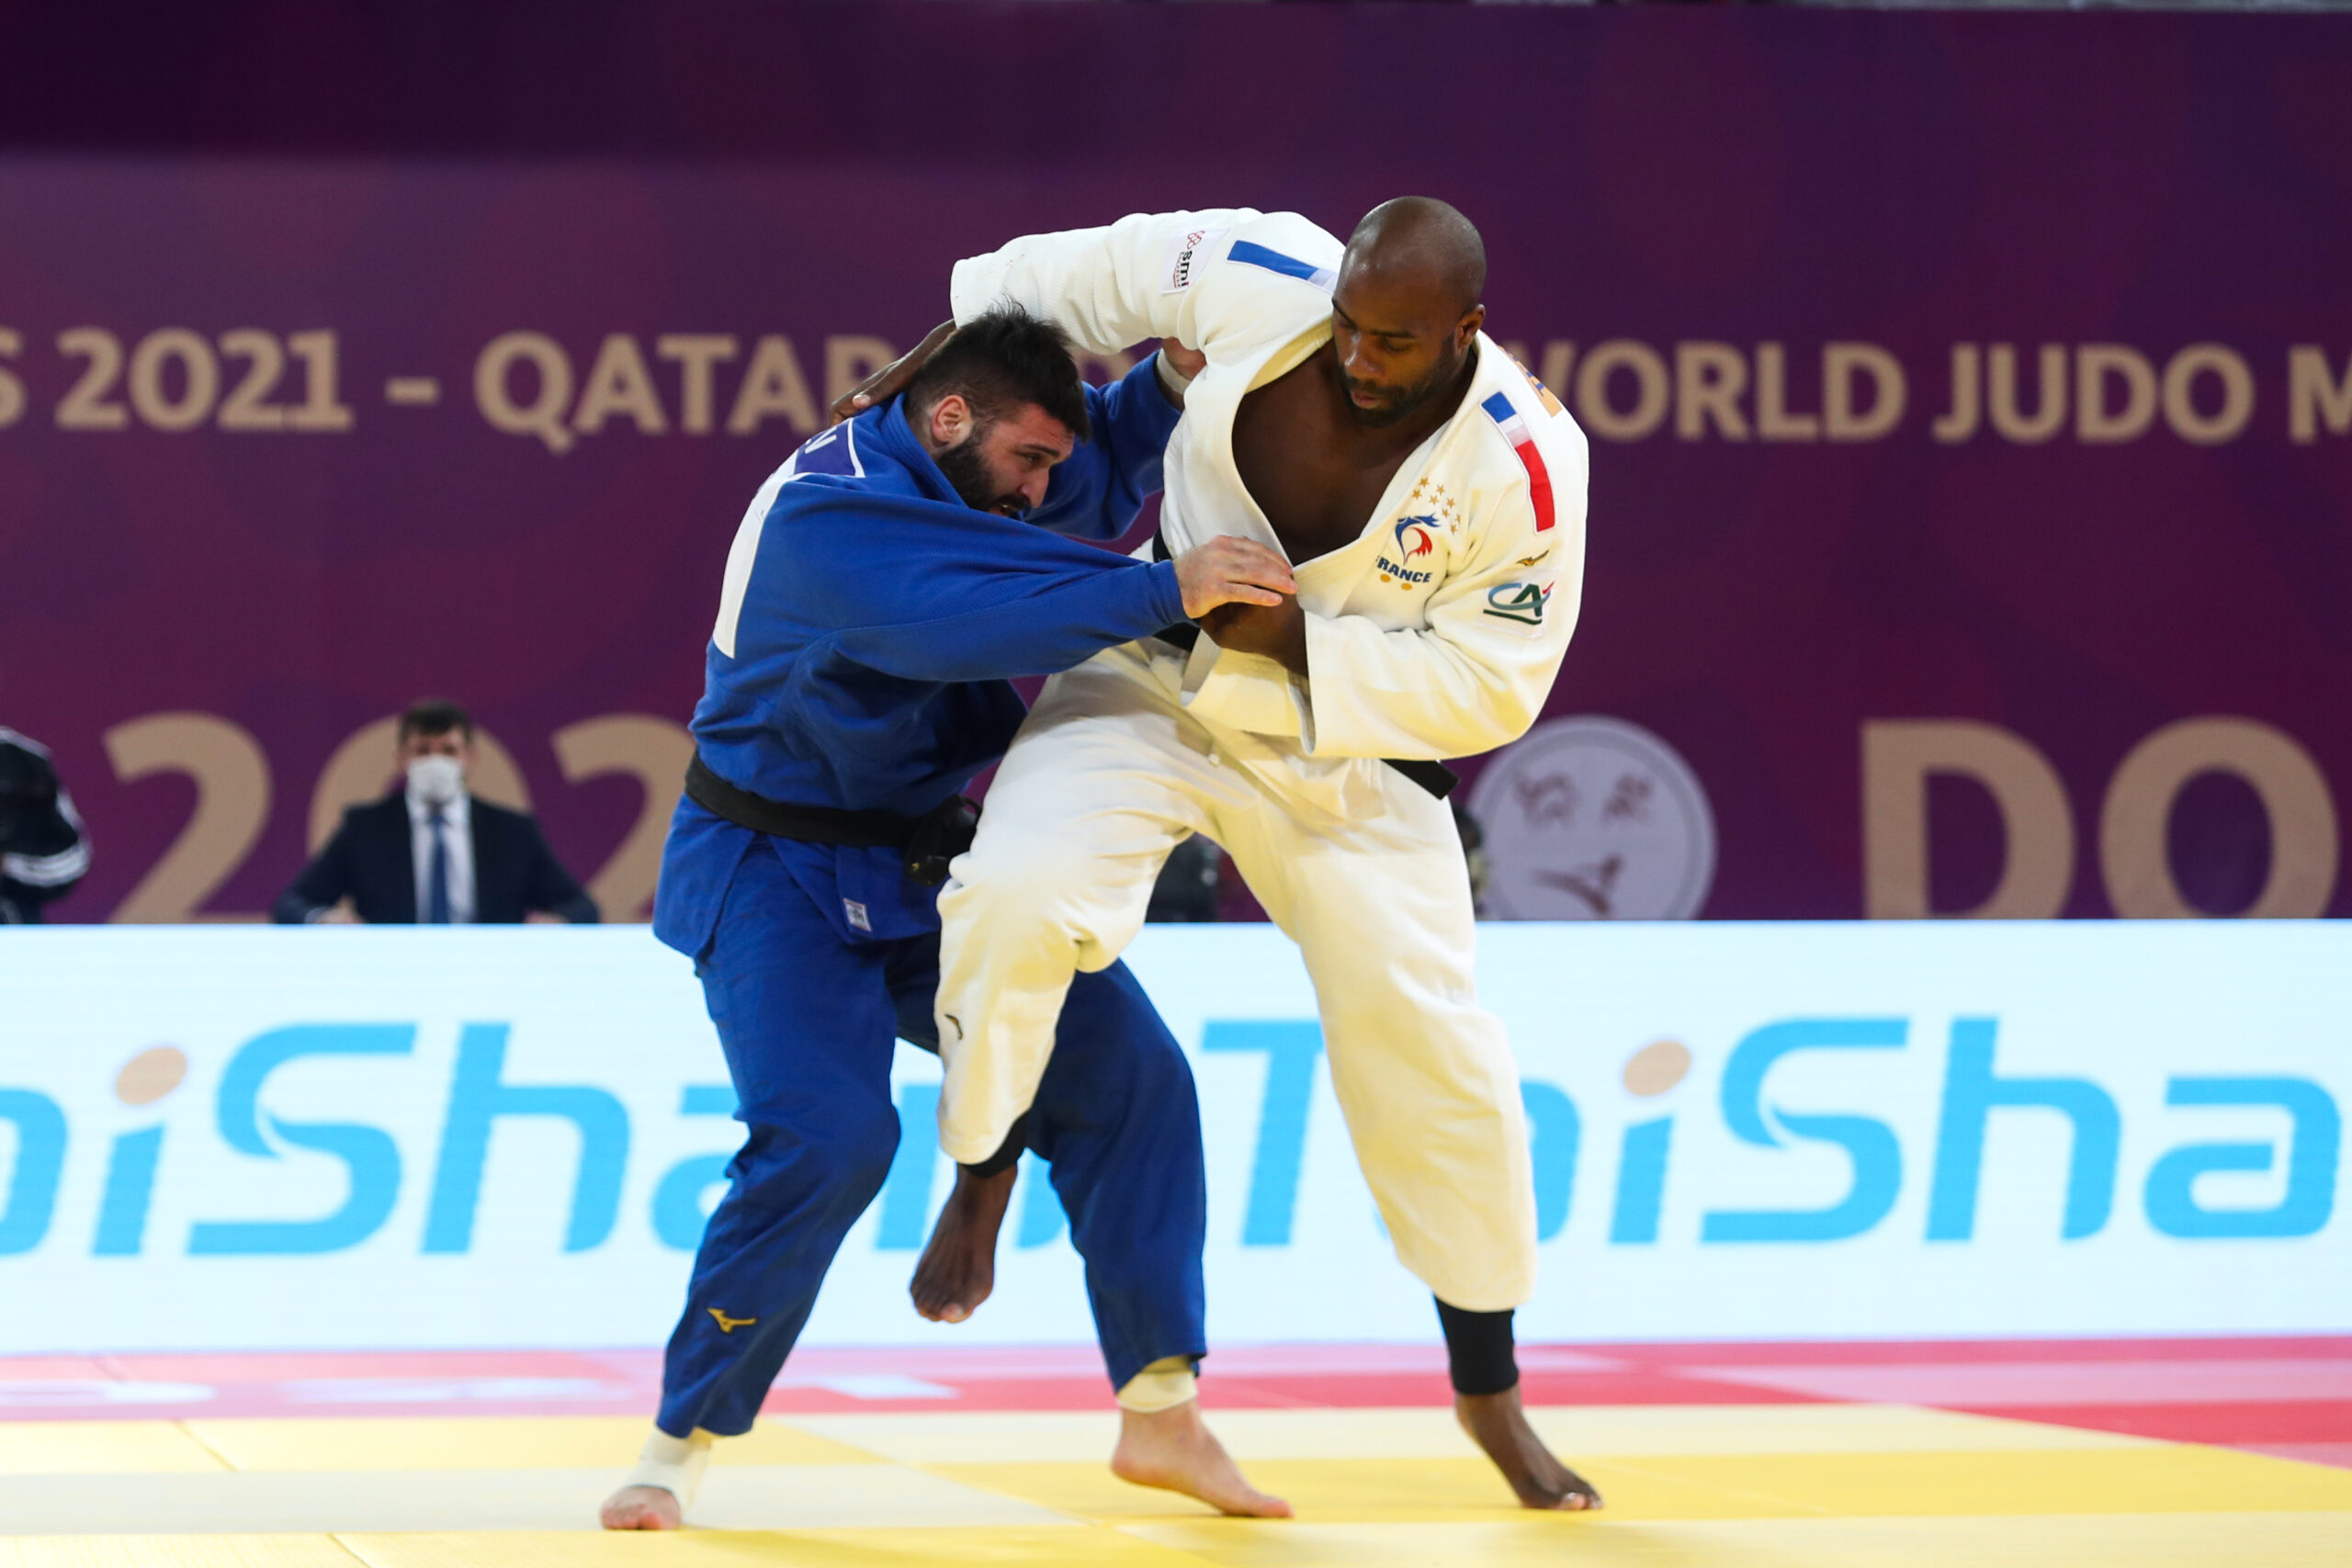 FRANCE POSE HUGE THREAT IN THE HEAVYWEIGHT CATEGORIES